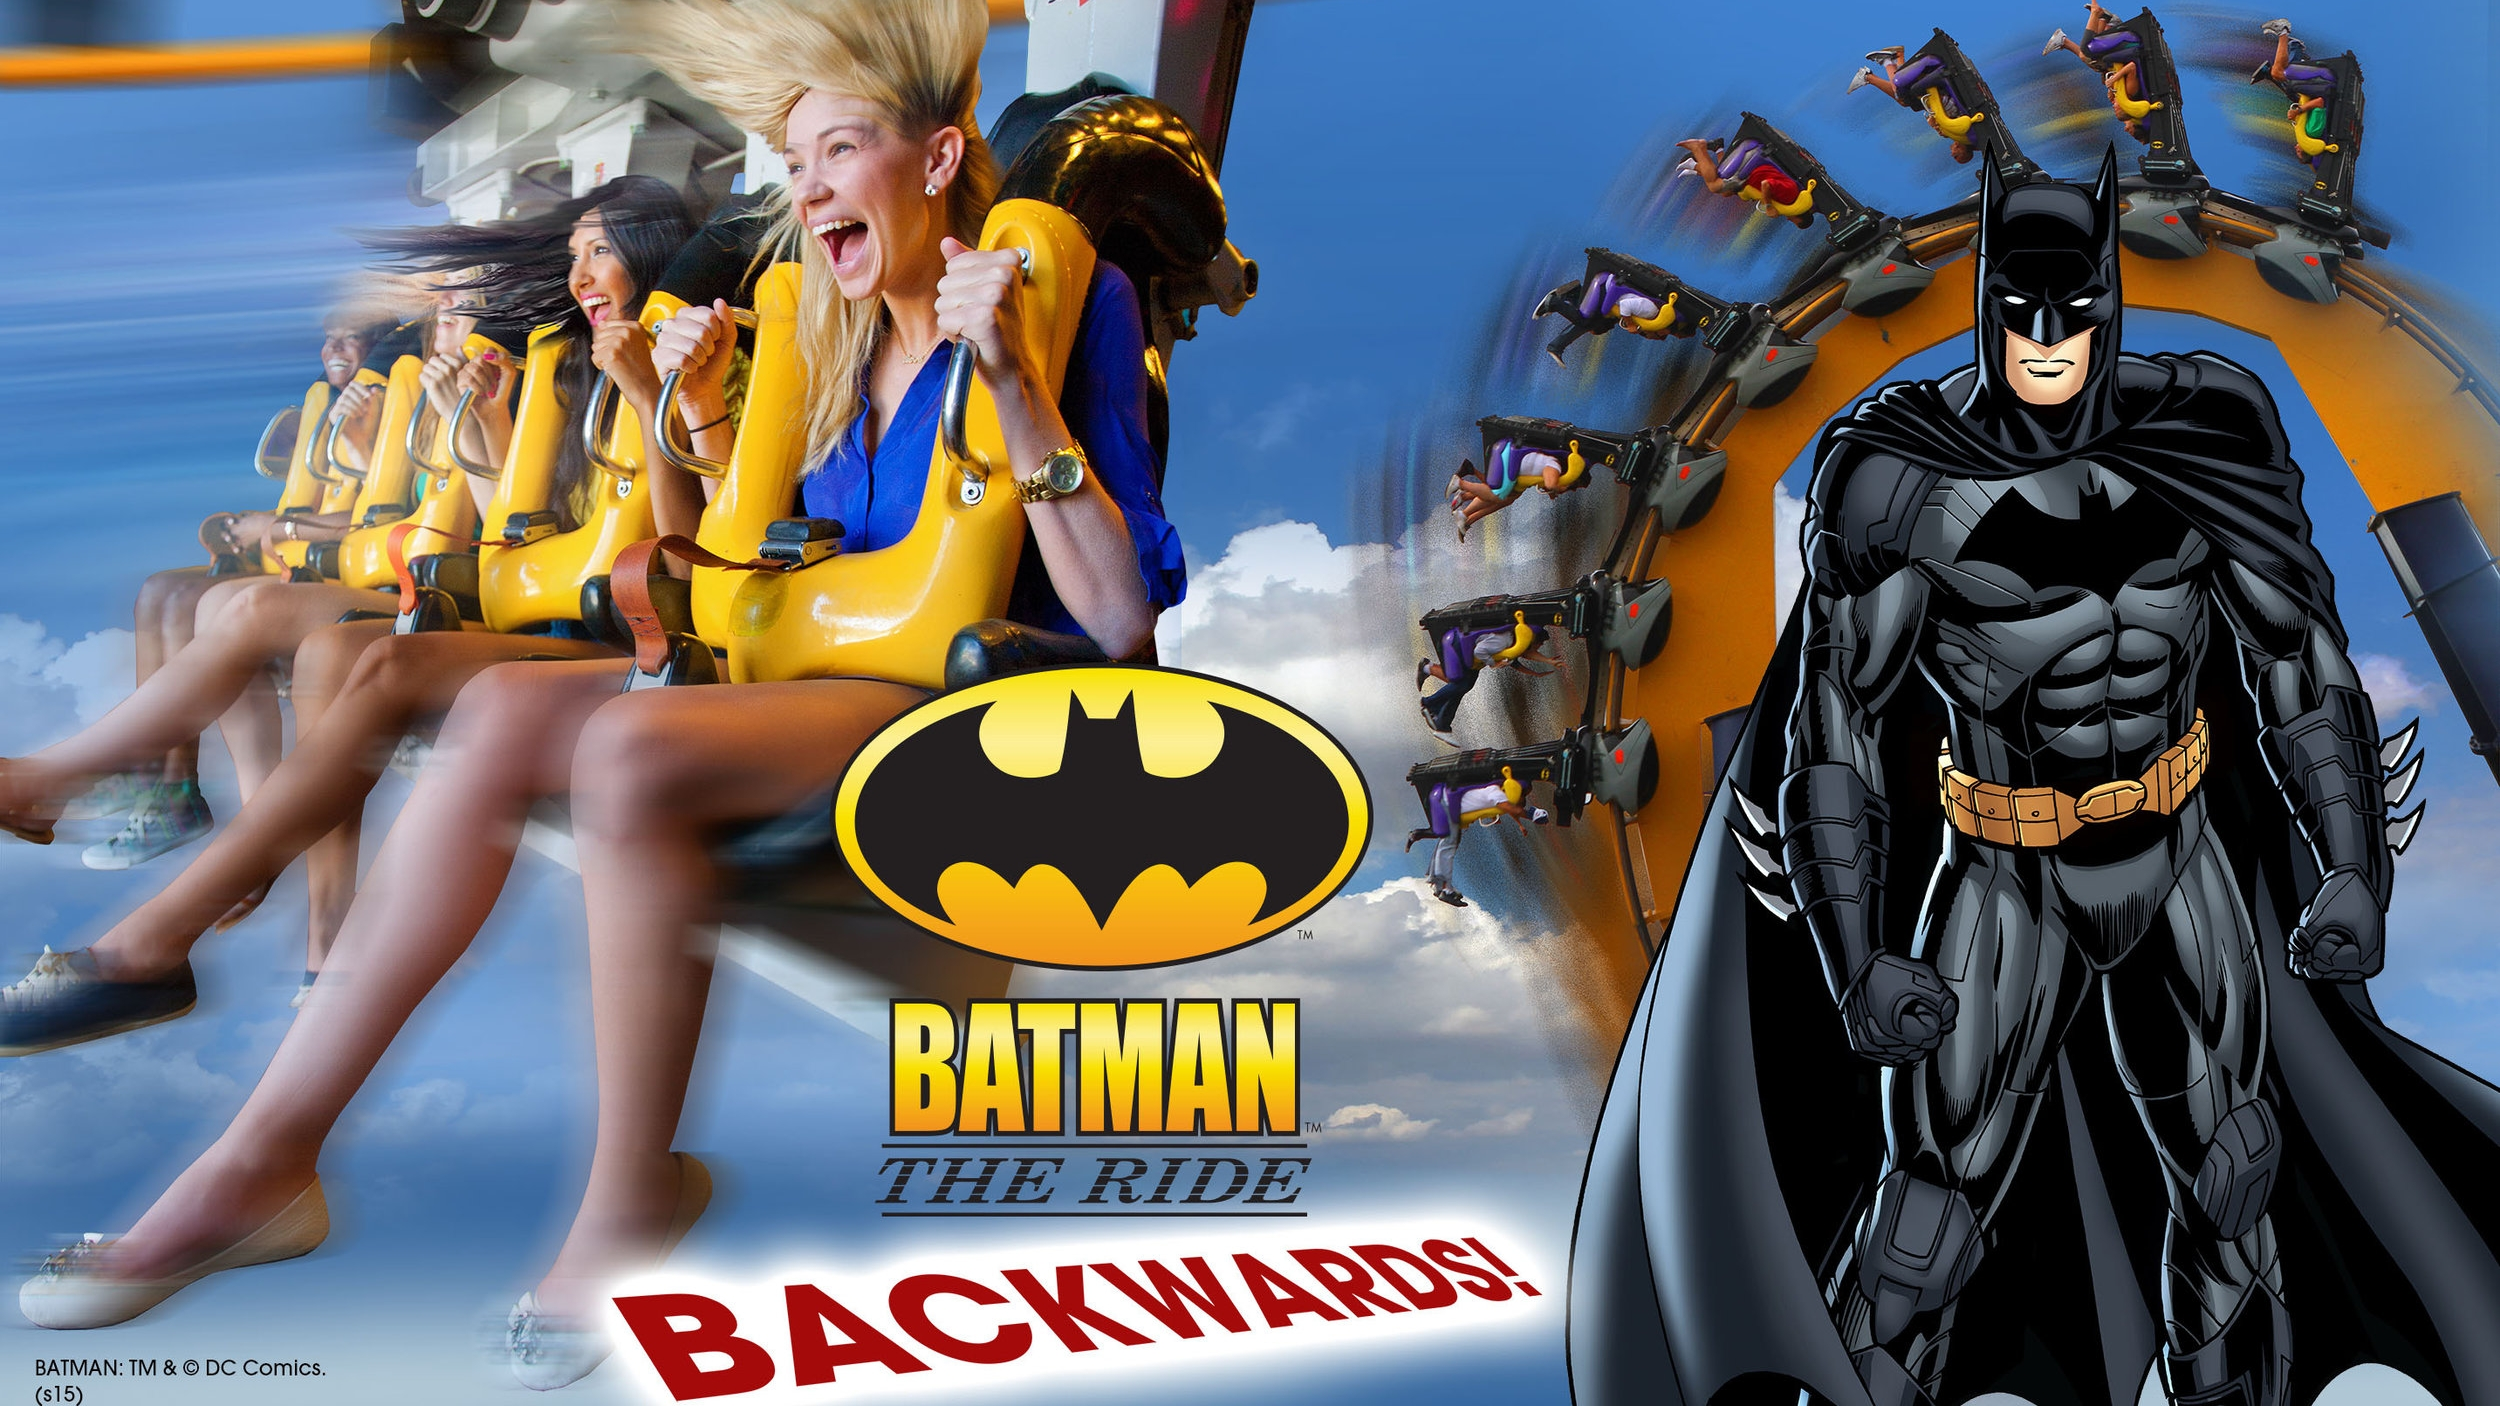 batman-backwards-key-art.jpg